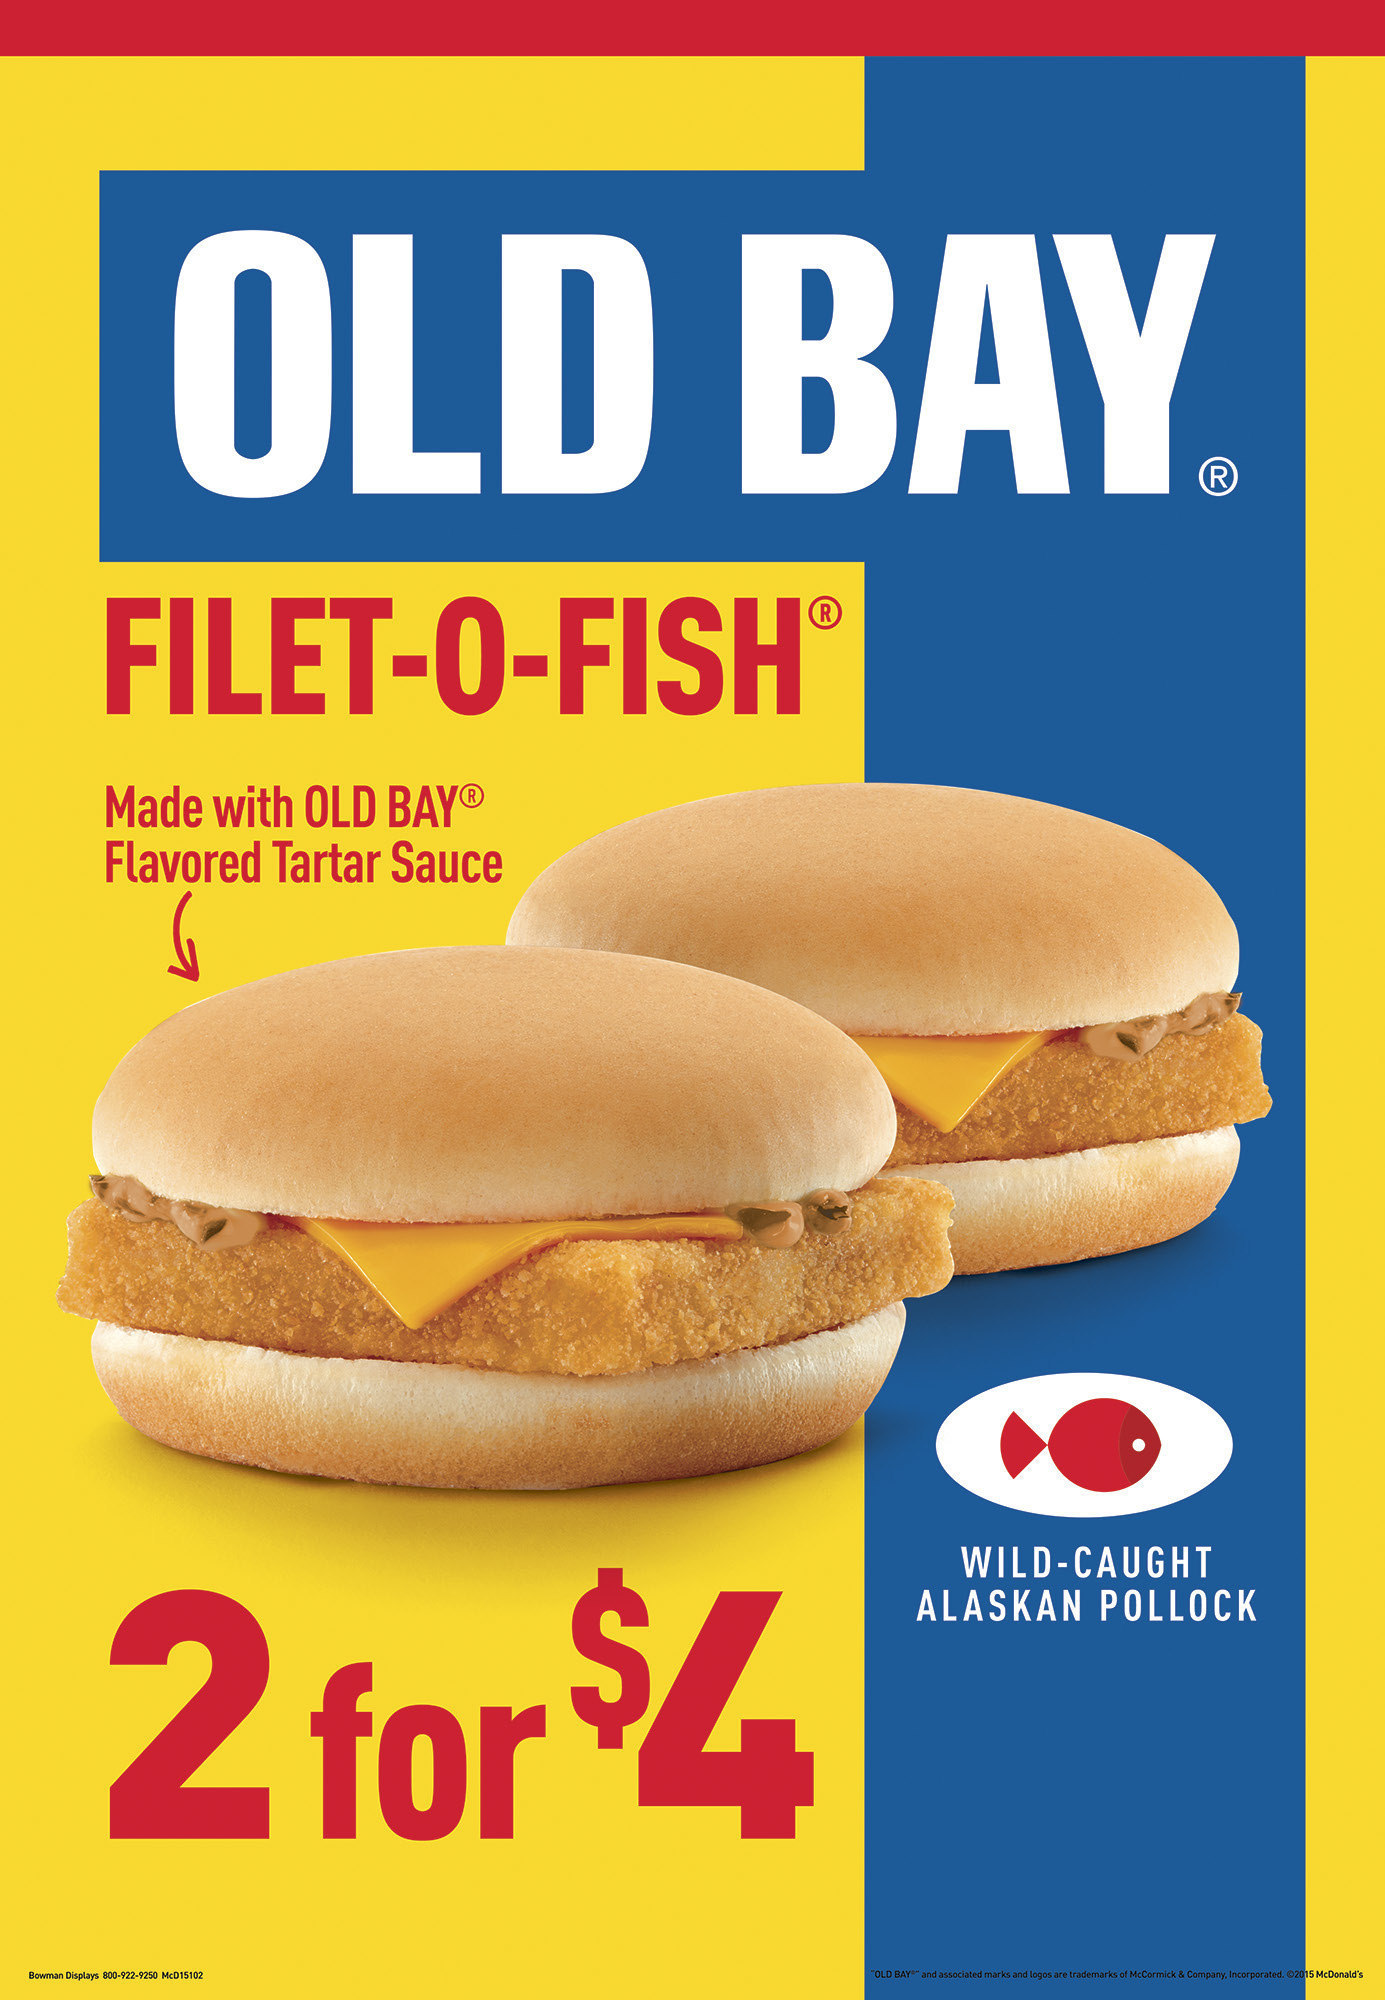 Mcdonald 39 s to offer filet o fish with old bay baltimore sun for Mcdonalds fish fillet